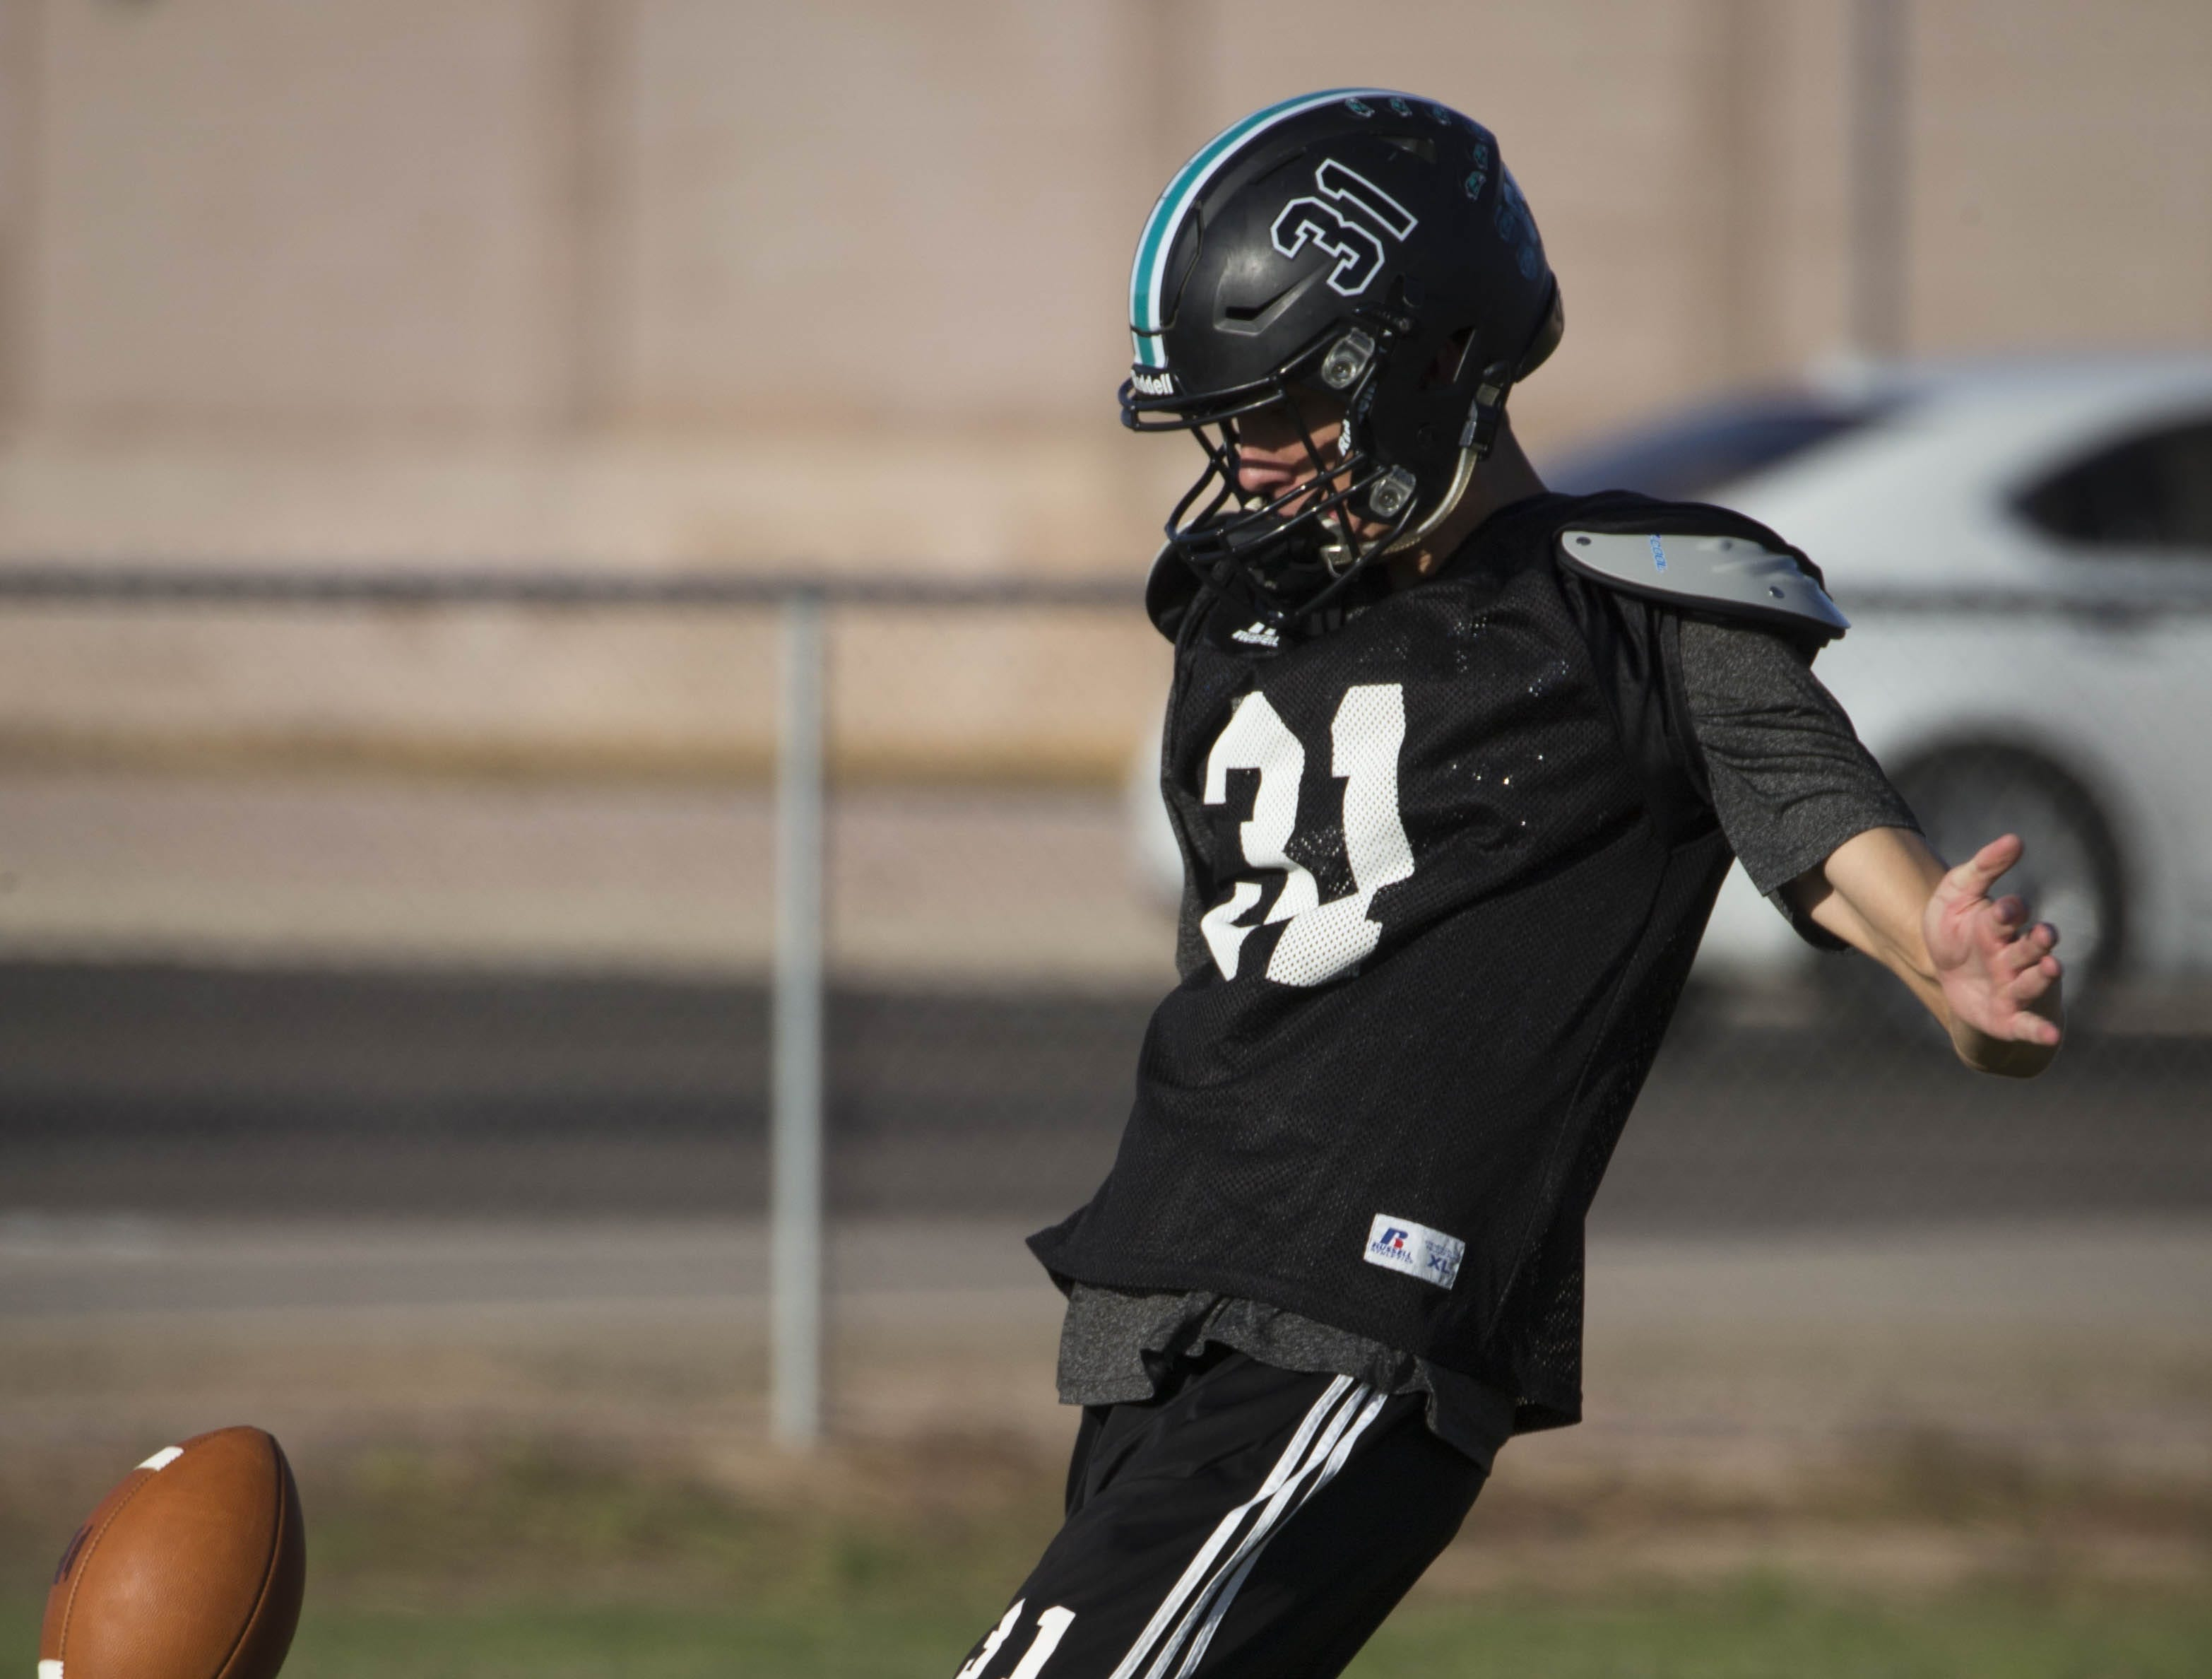 Austin McNamara punts the ball during football practice, October 17, 2018, at Highland High School, Gilbert.